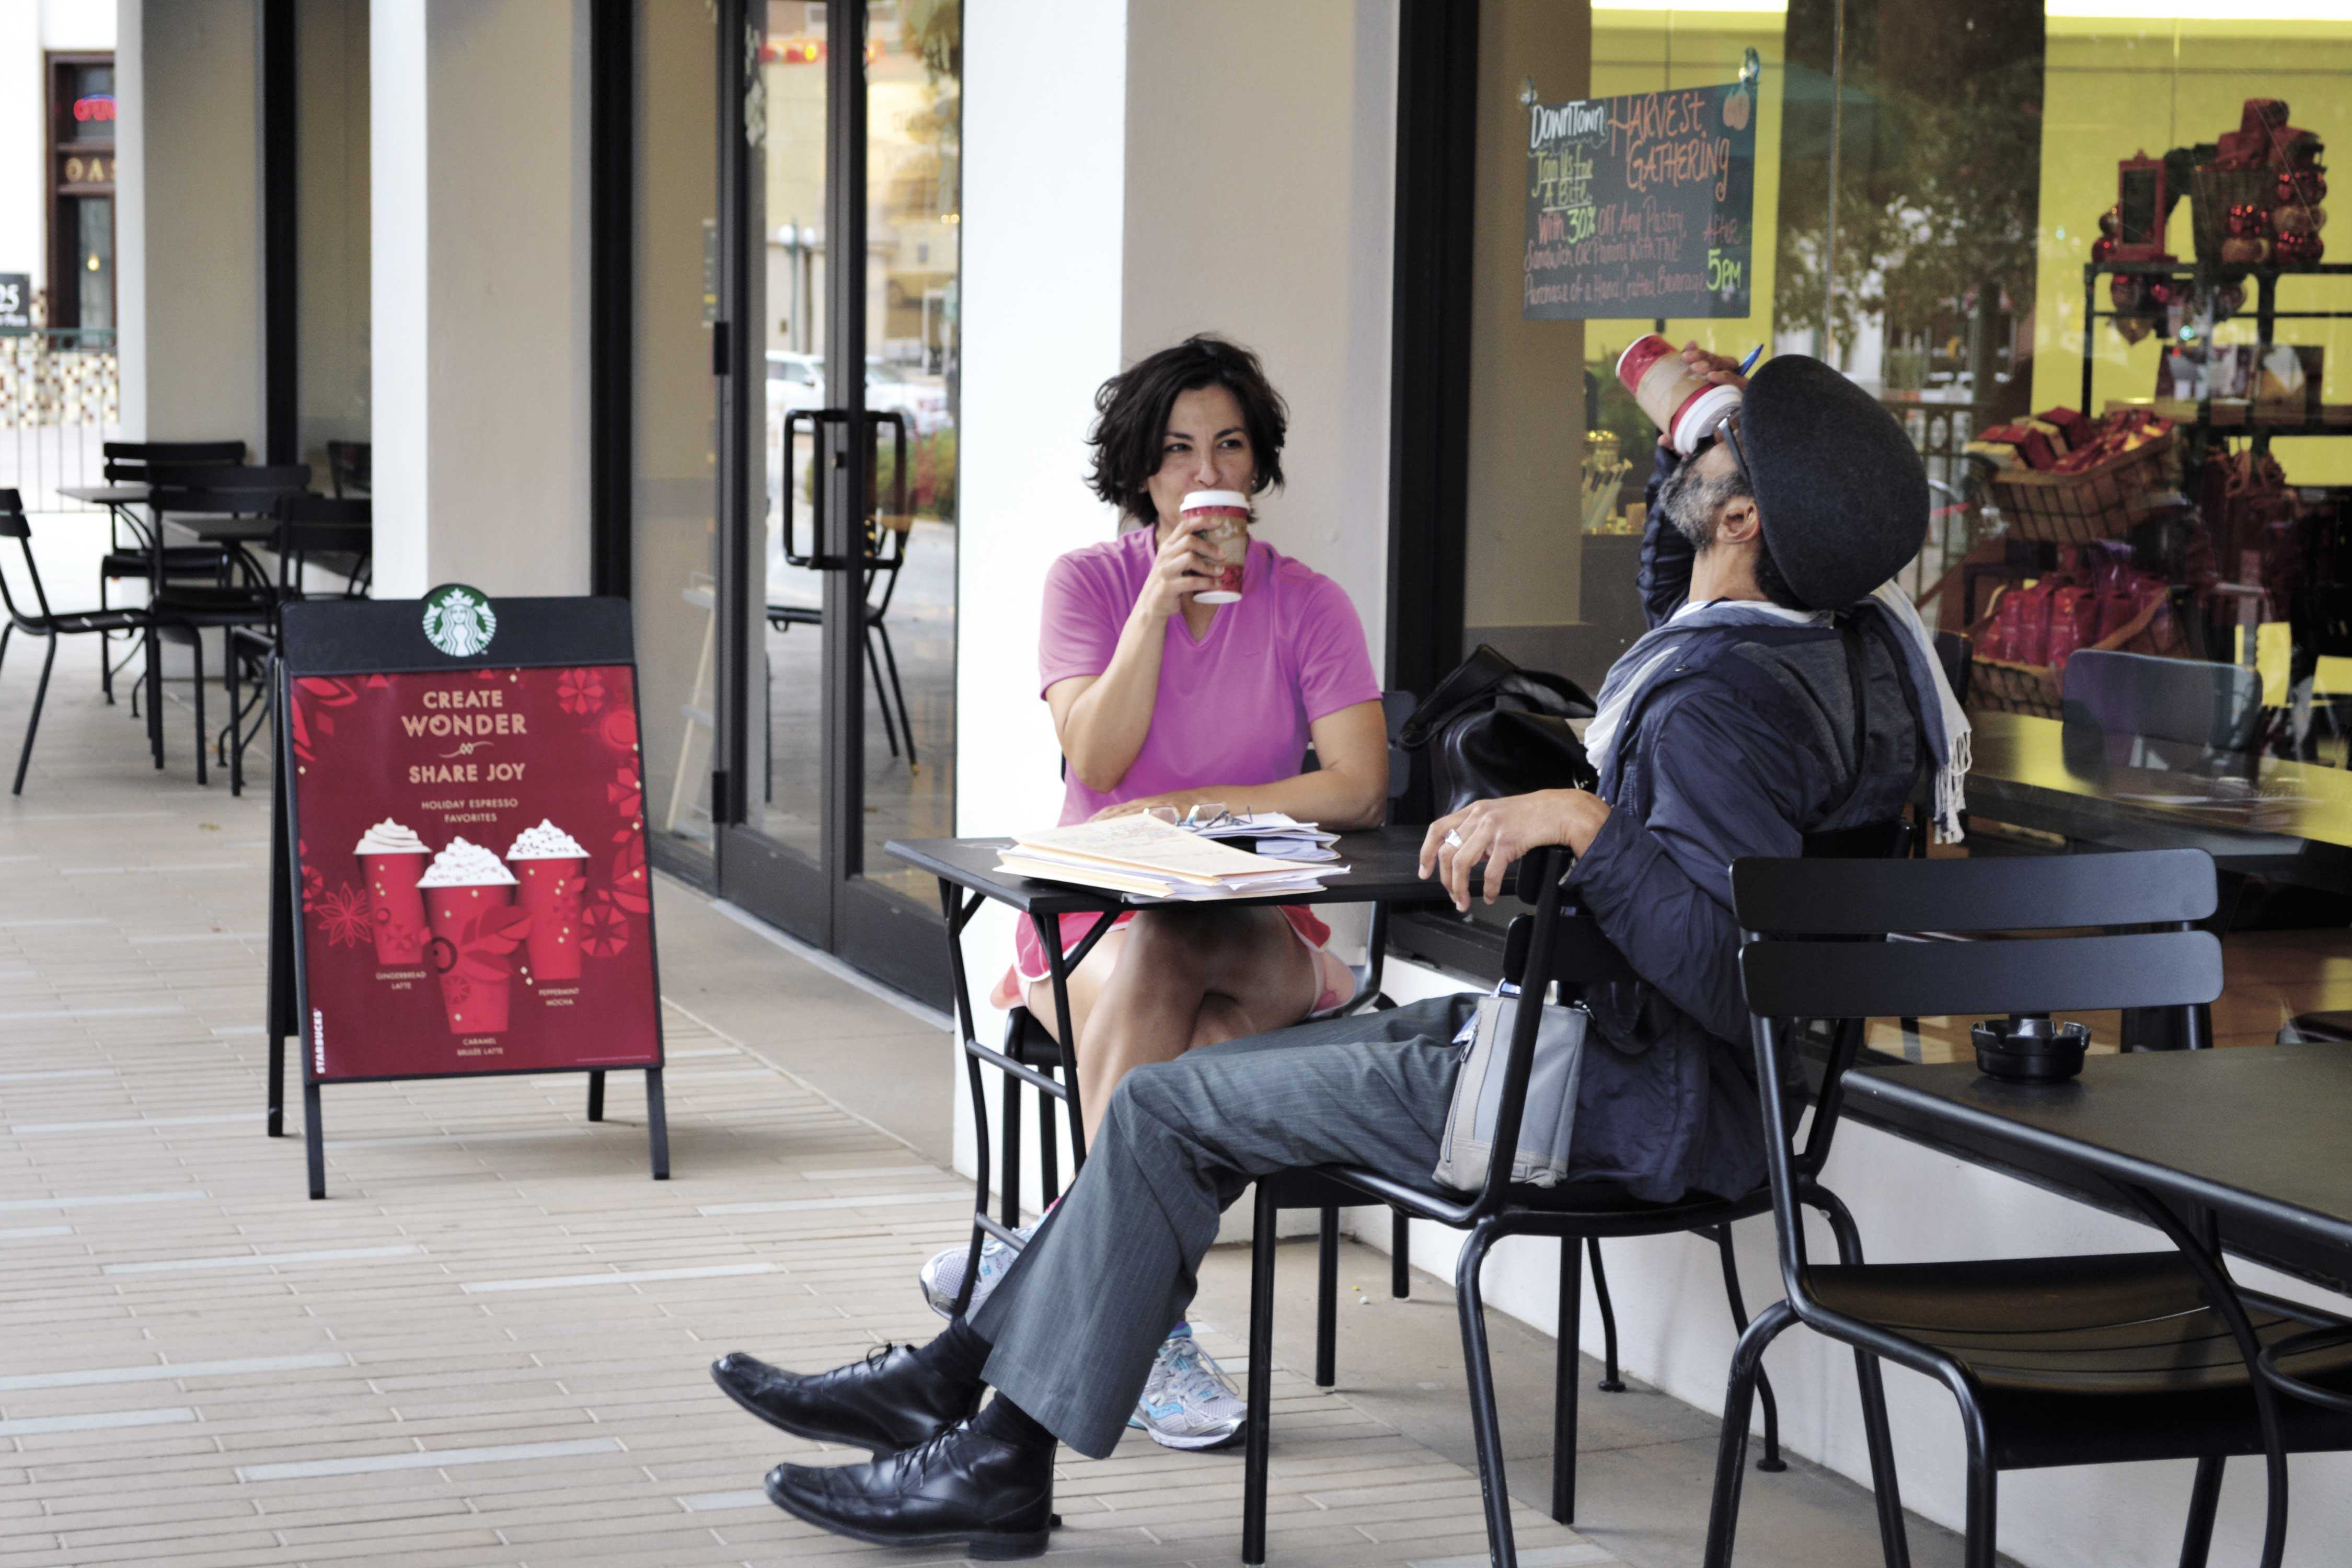 Starbucks coffee was voted as best coffee place, while Kinley's Coffee and Tea House came in second in the Pick Awards survey.